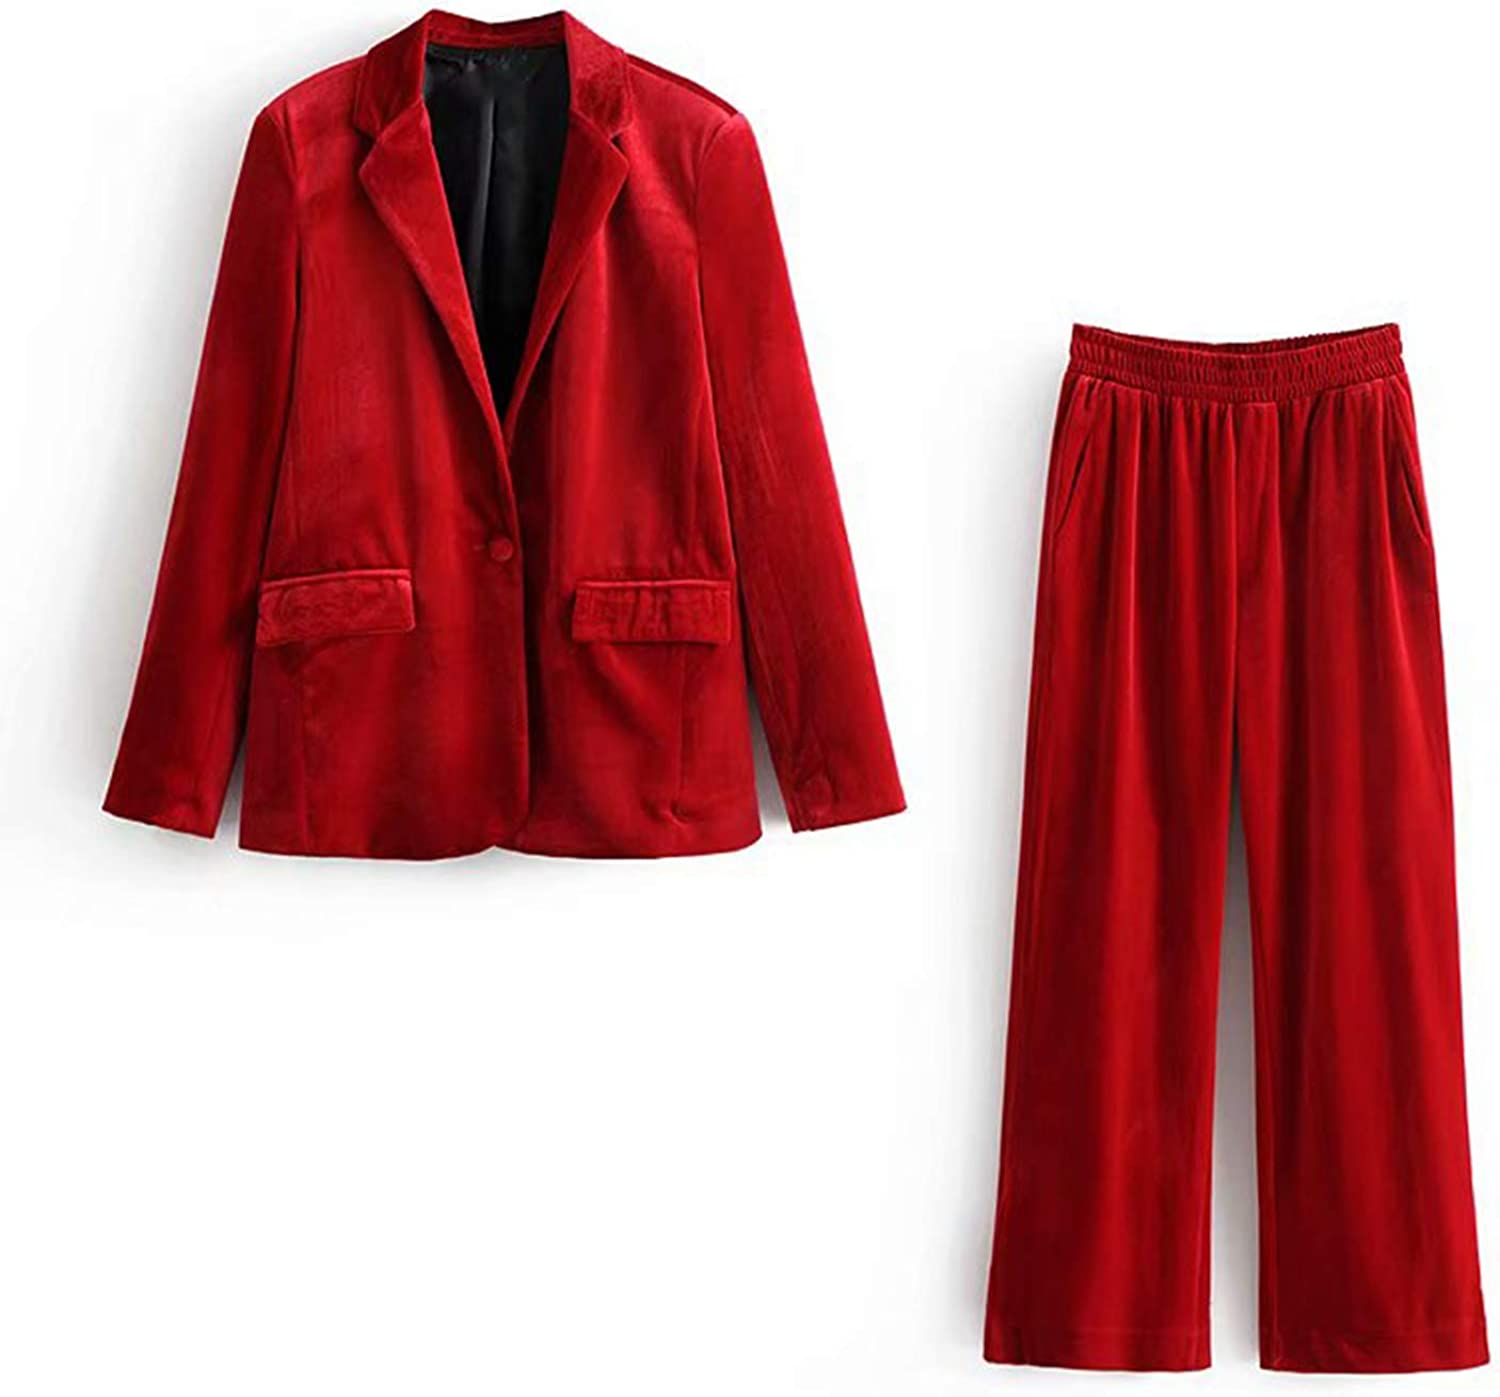 Aancy Spring Blazer Set 2019 Casual Velvet Womens Clothing Two Piece Set Blazer Suit Women 2 Piece Set Women